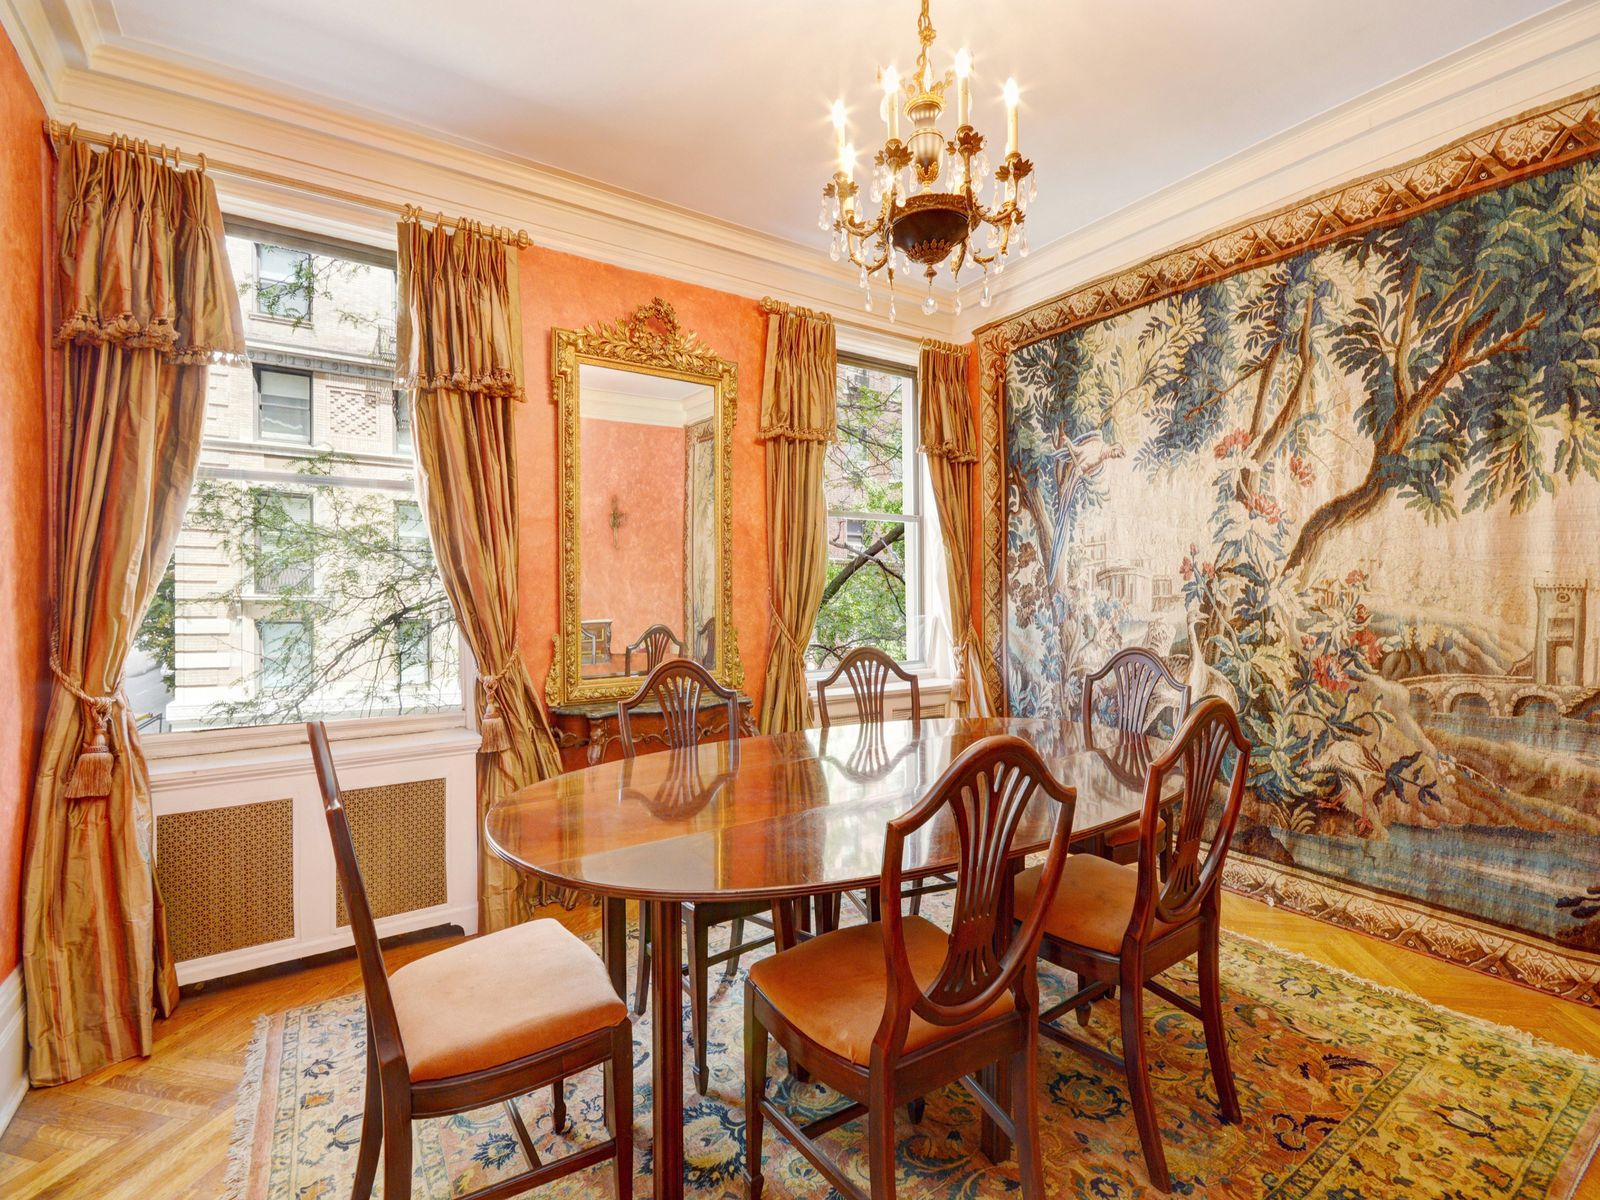 Graciously Yours, New York NY Cooperative - New York City Real Estate